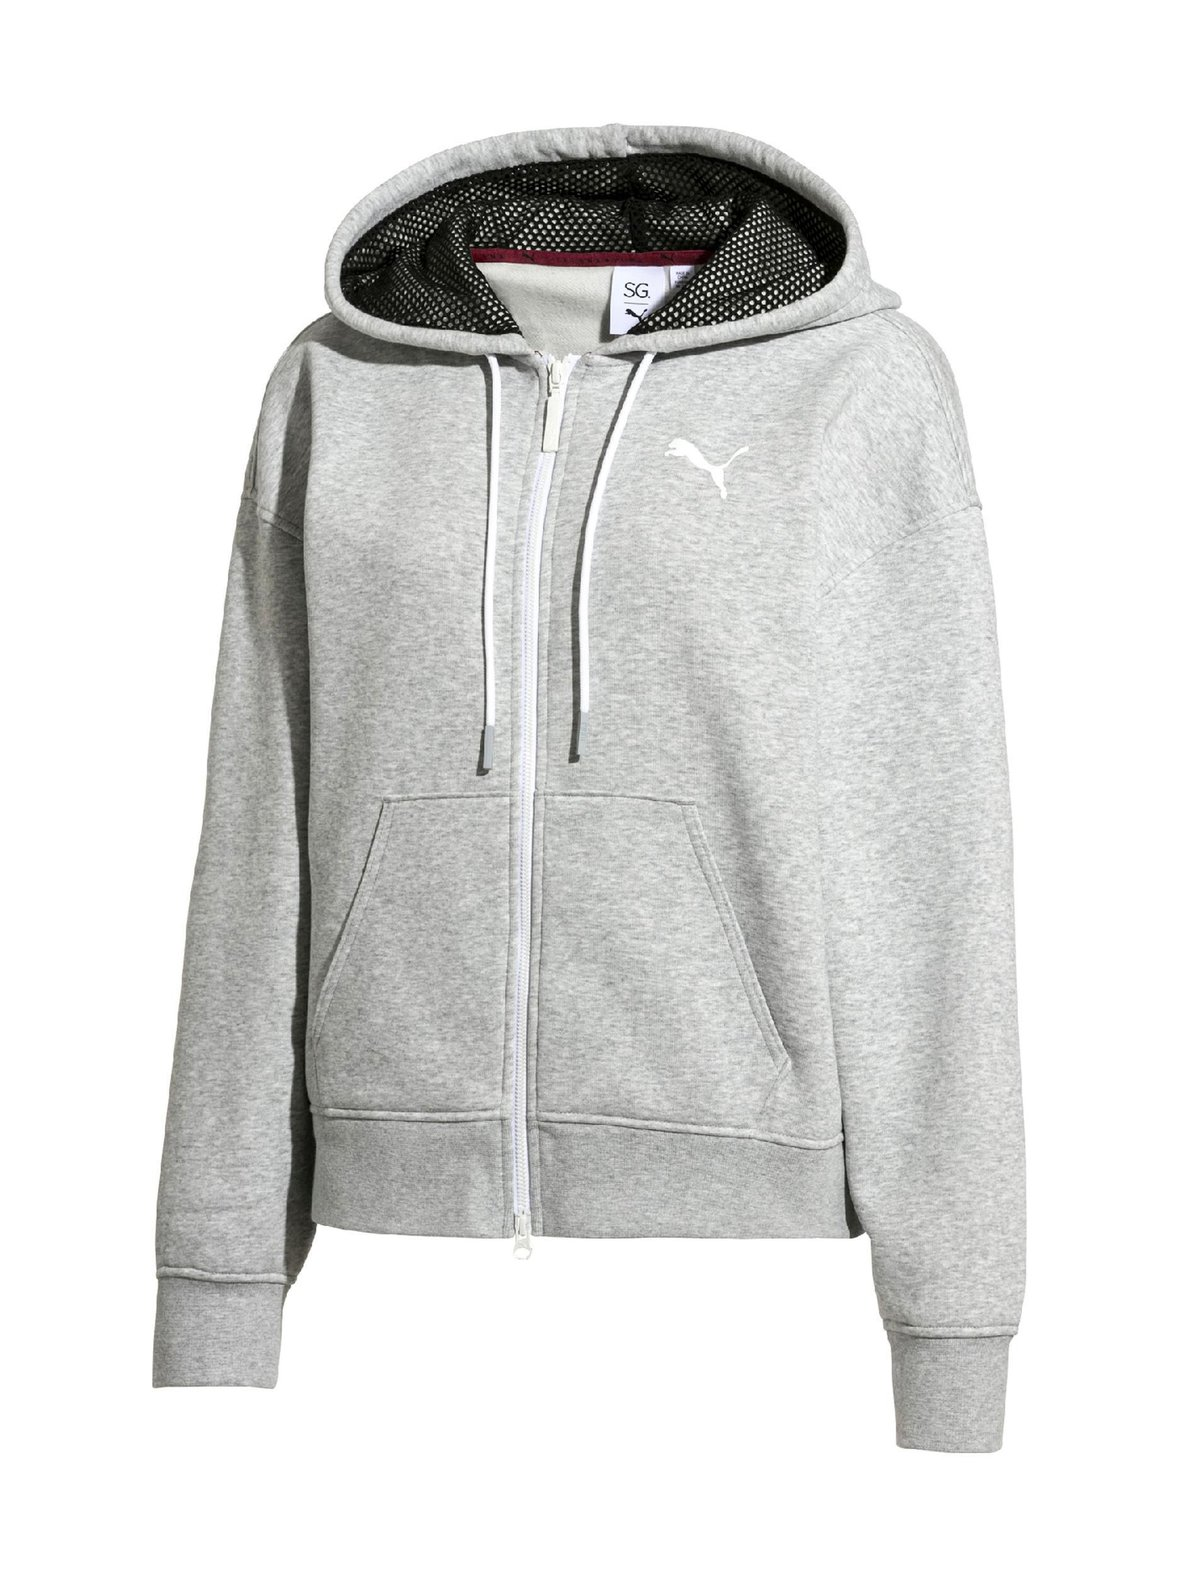 Light Grey Heather (harmaa) Puma Puma x SG Fz Hoodie -huppari 517805 ... cfcf77f6b8